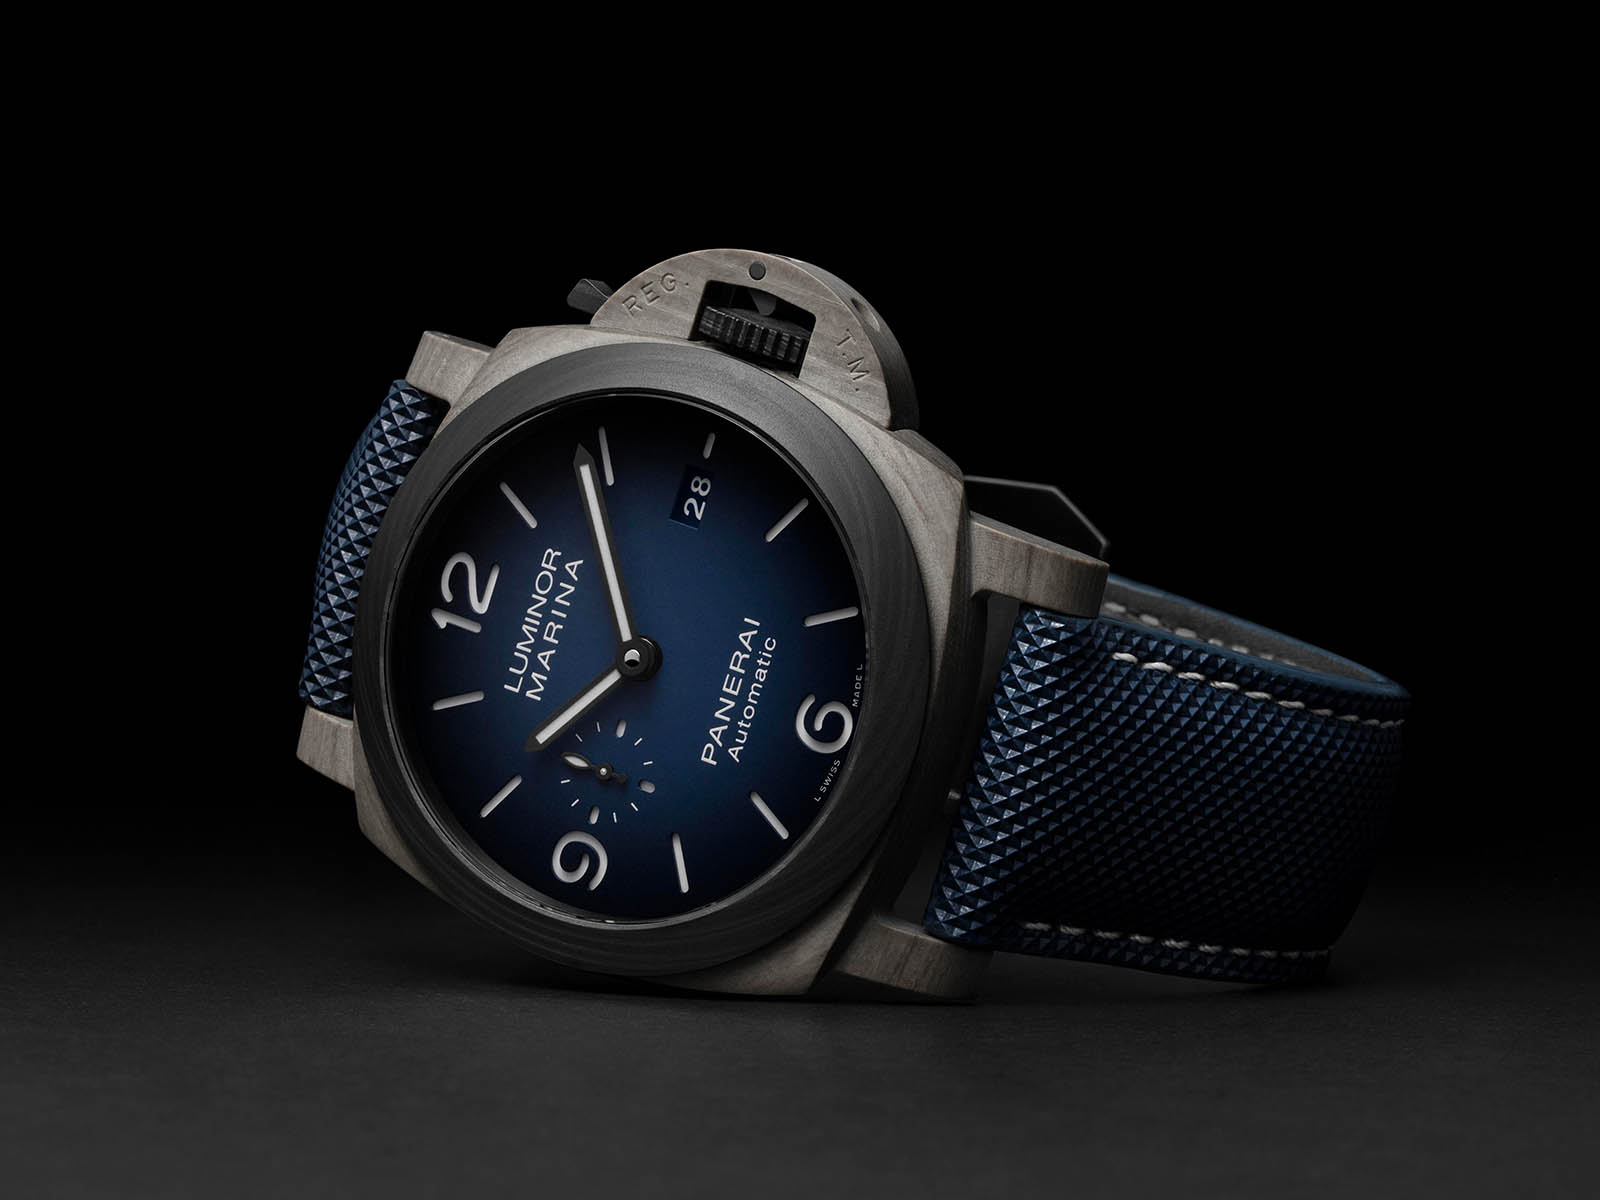 pam01663-officine-panerai-luminor-marina-fibratech-44mm-blue-dial.jpg